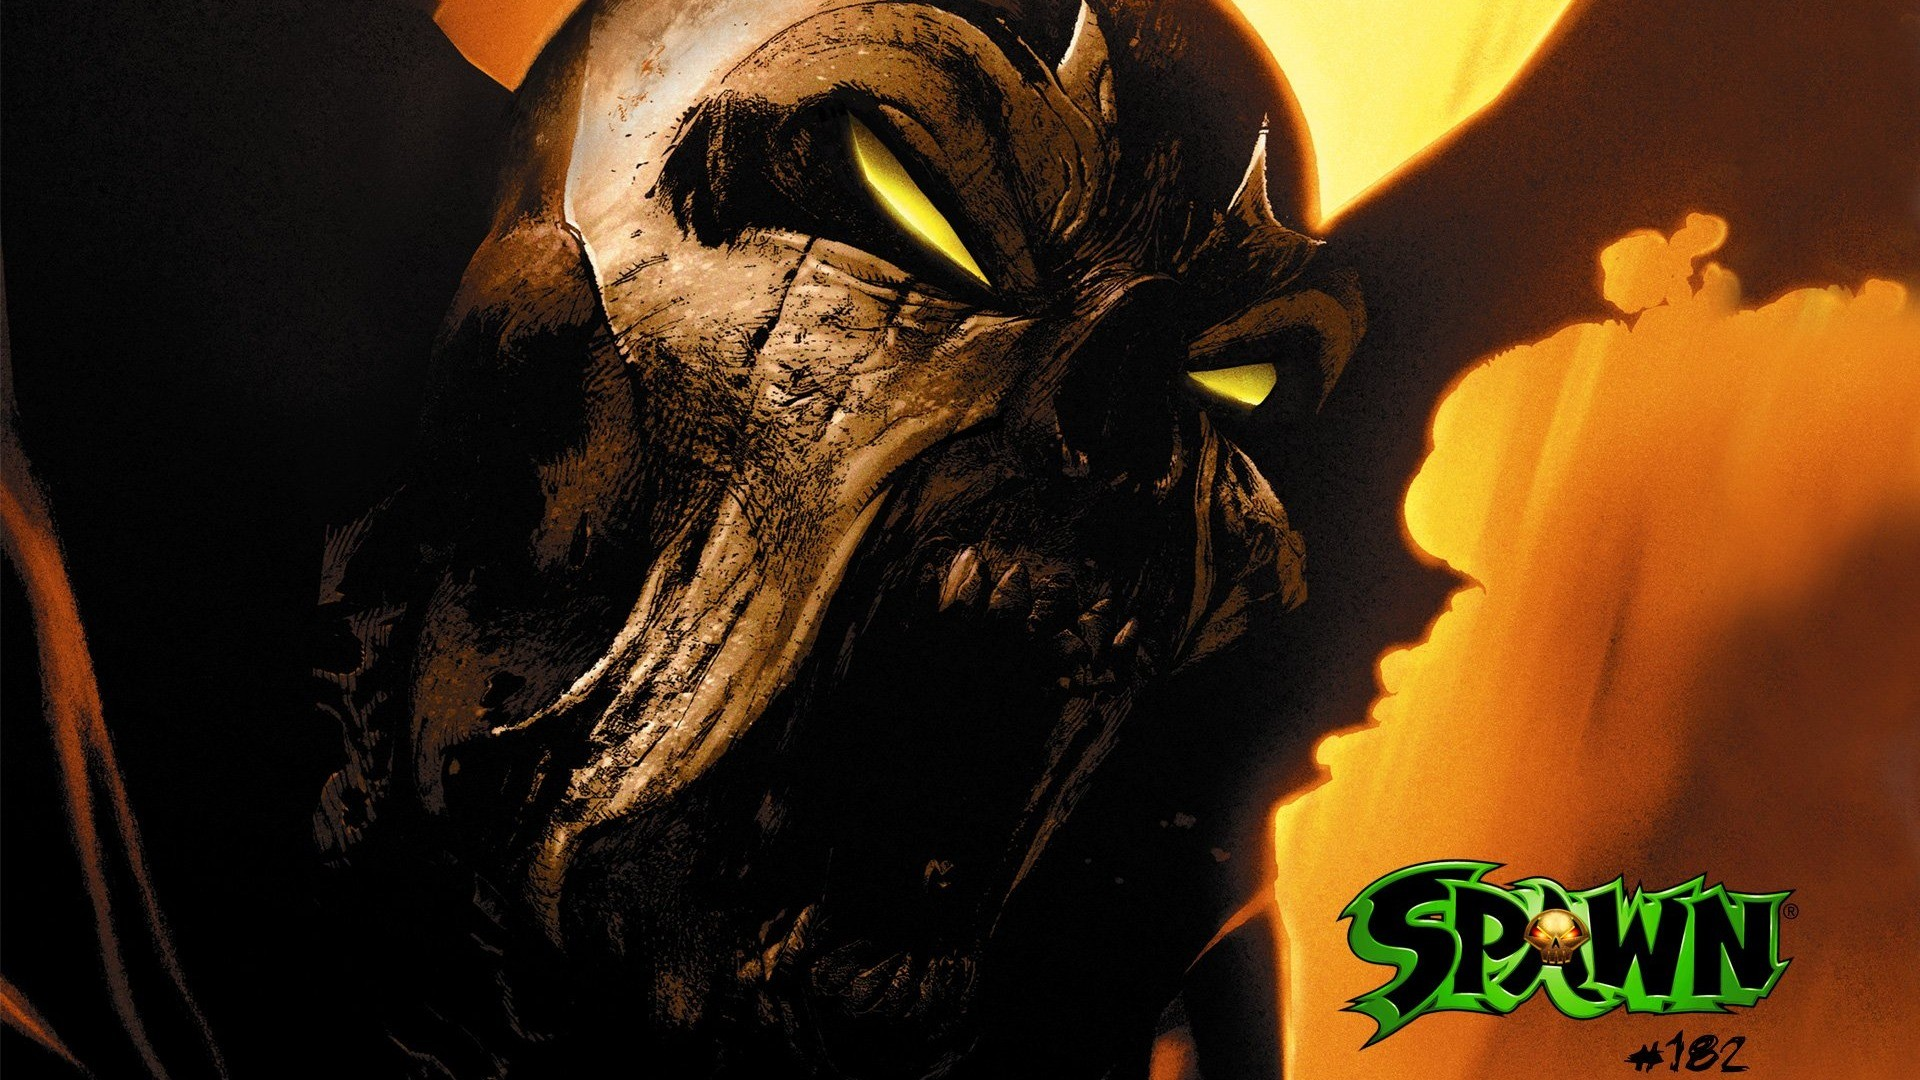 Spawn HD Wallpapers #6 – 1920×1080.